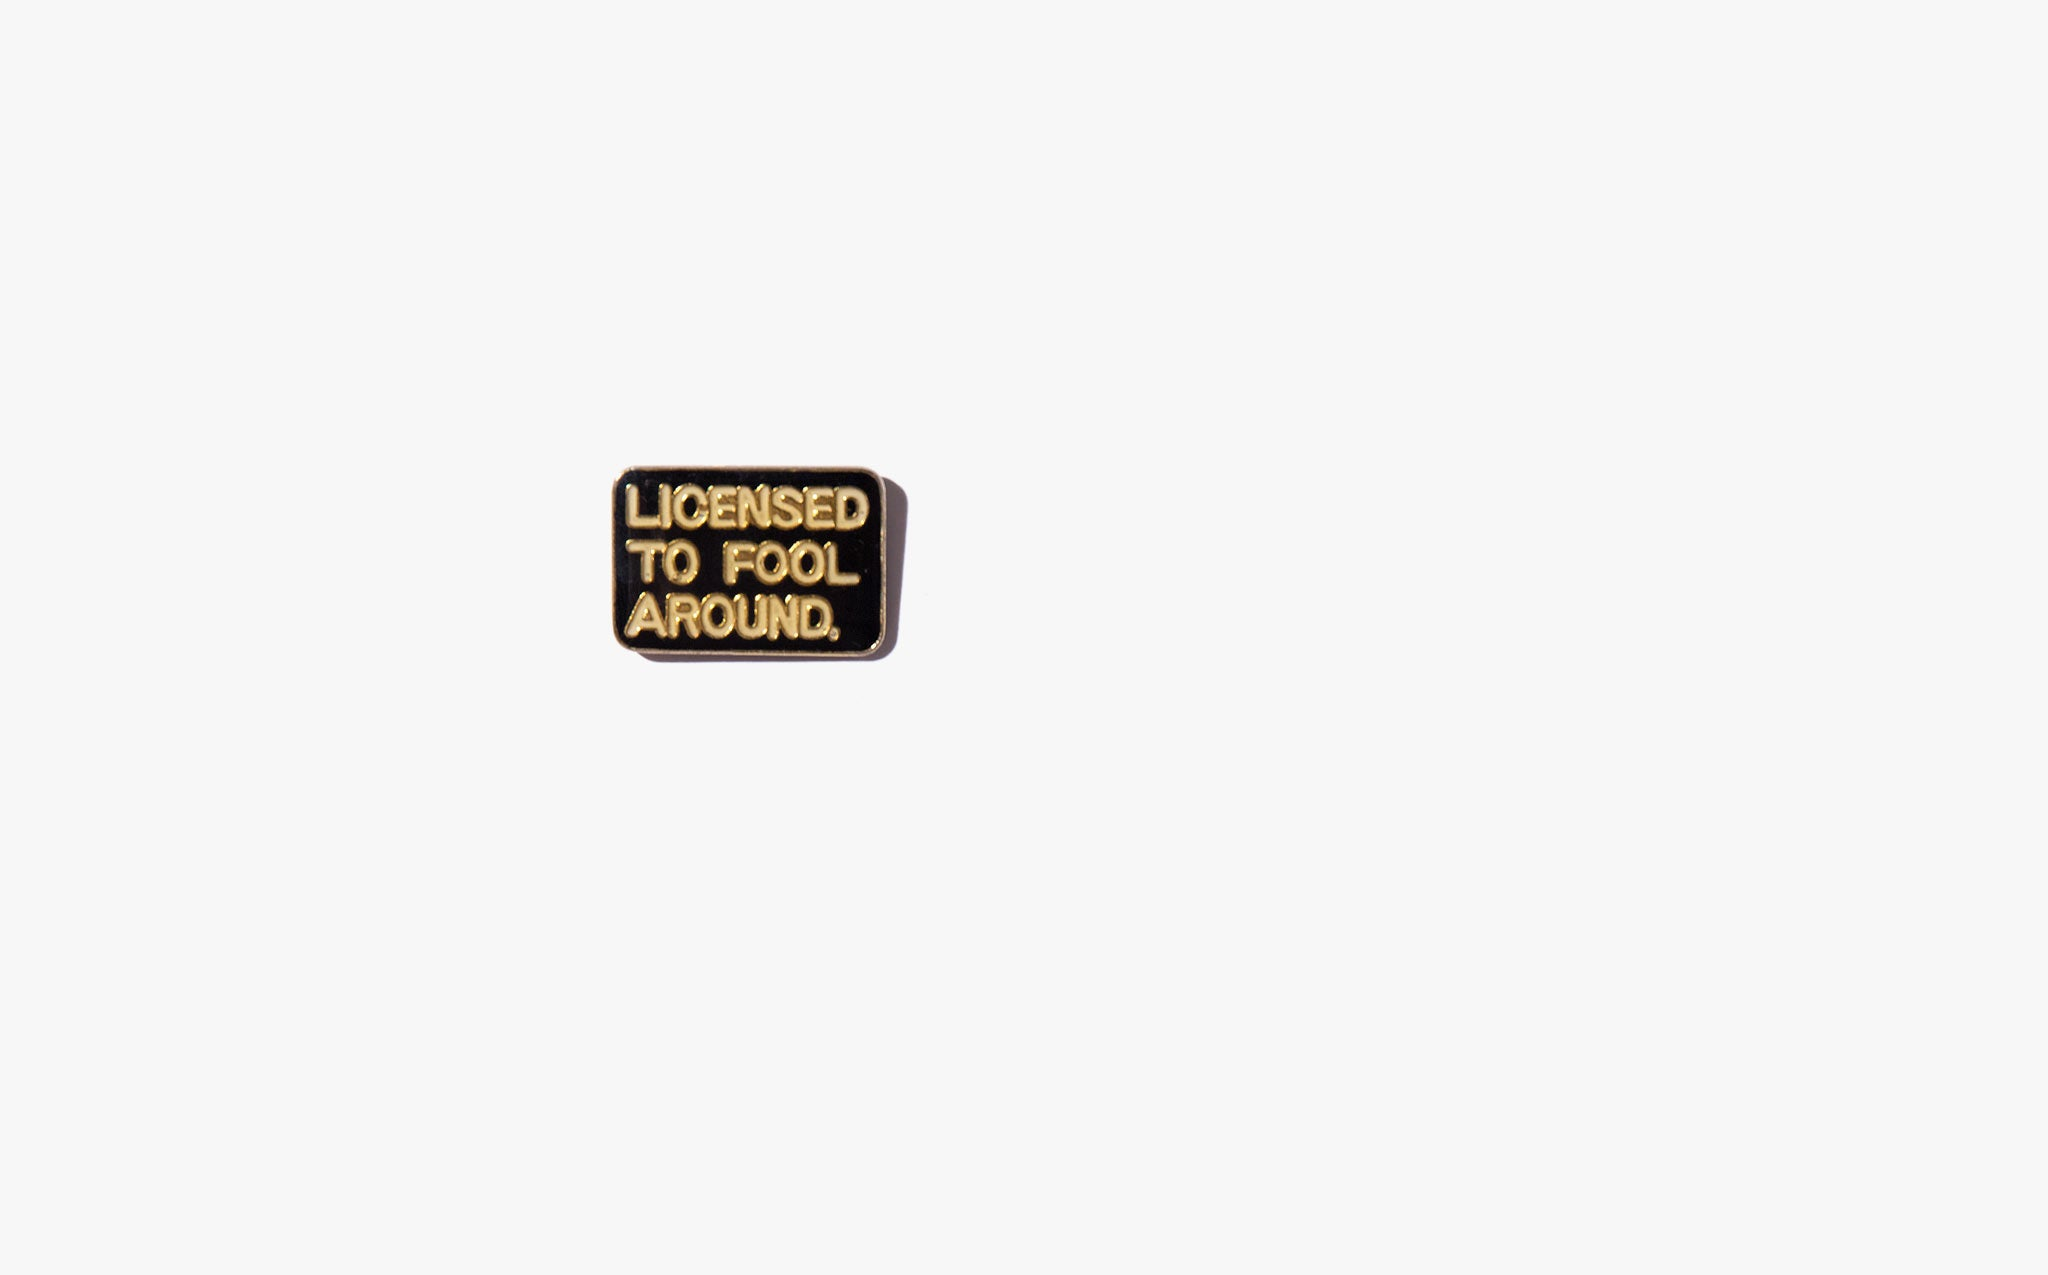 Licensed To Fool Around Vintage Pin